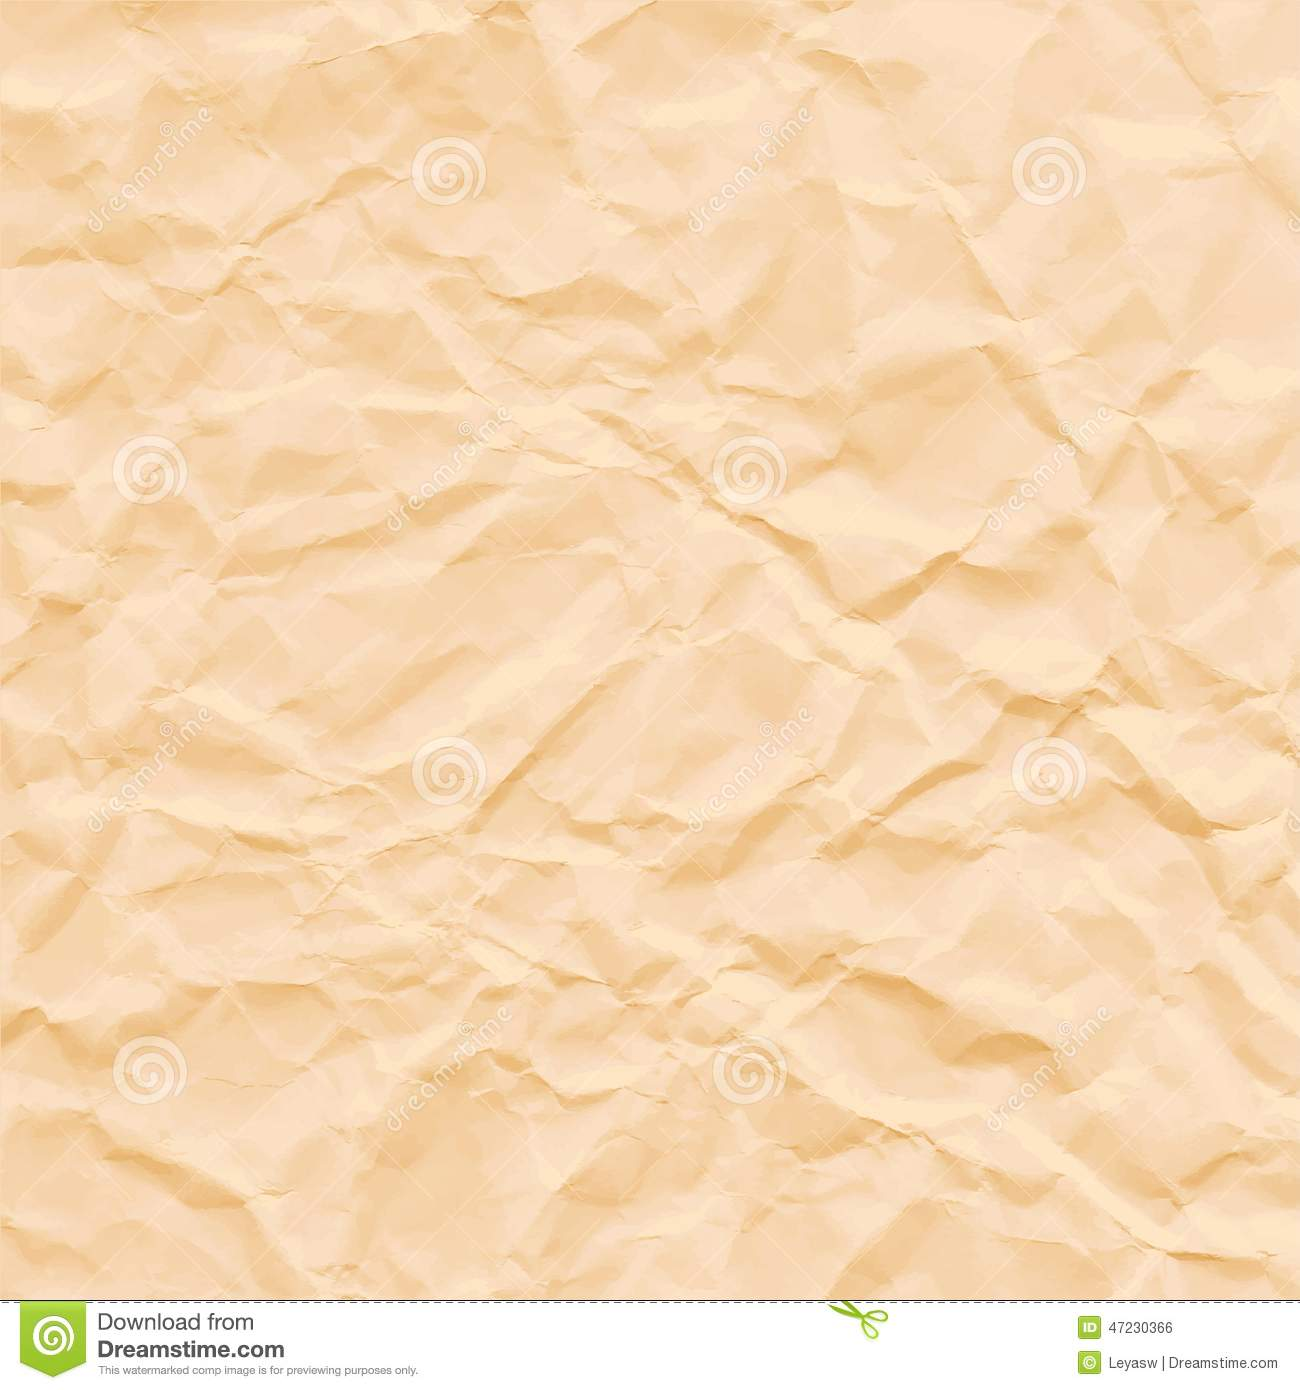 White Crumpled Paper Texture. Vector Illustration. Cartoon ...